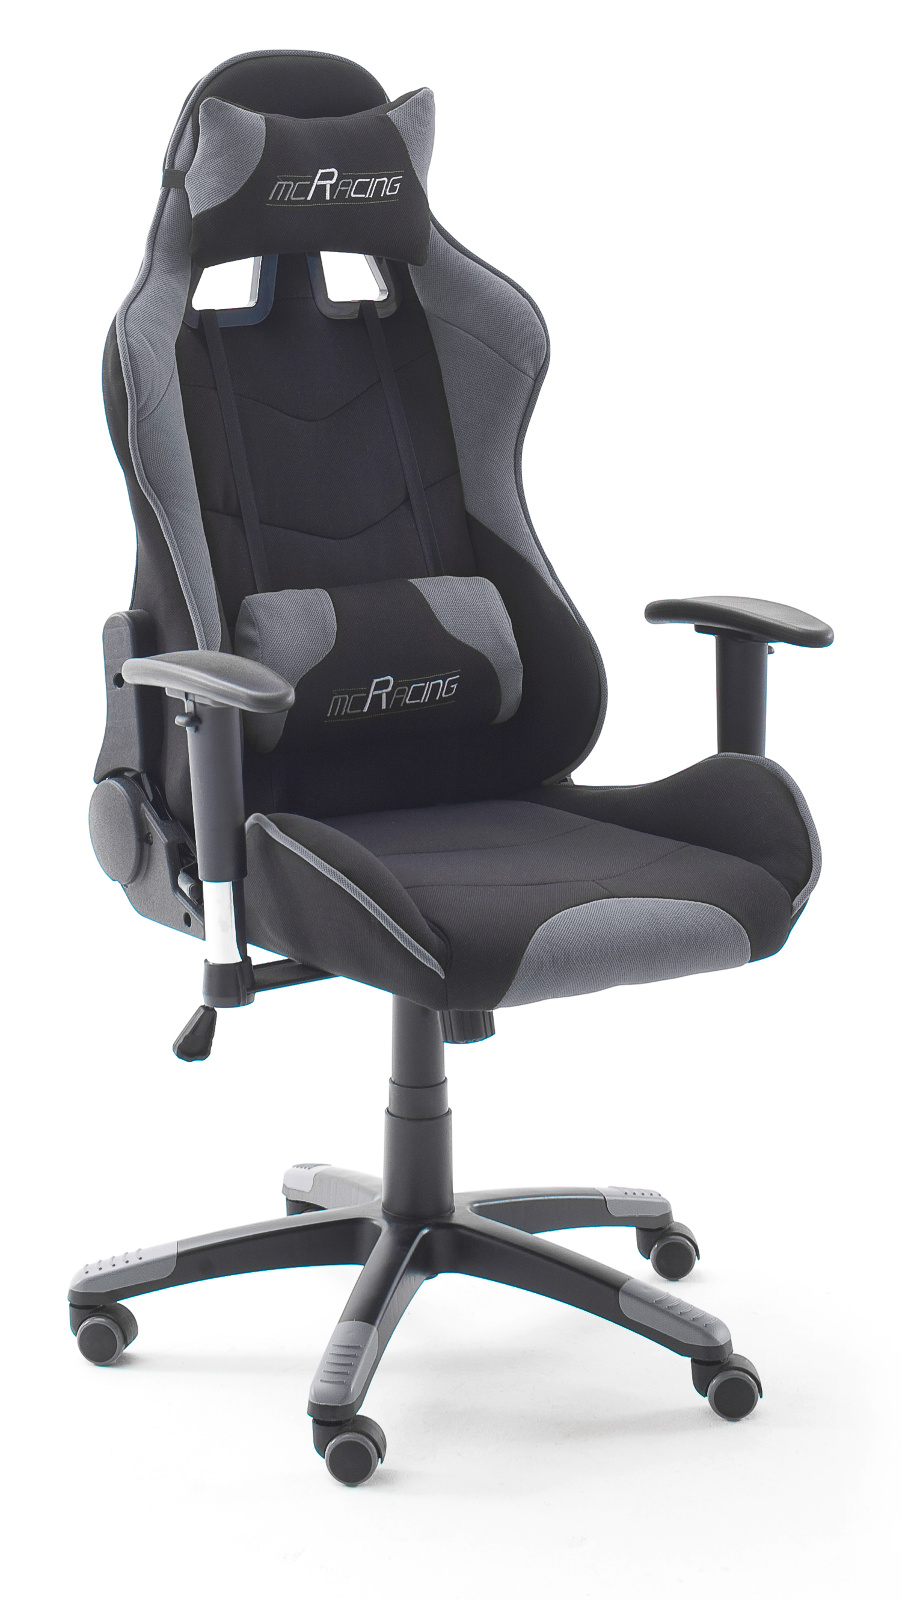 mc racing gaming stuhl swinger